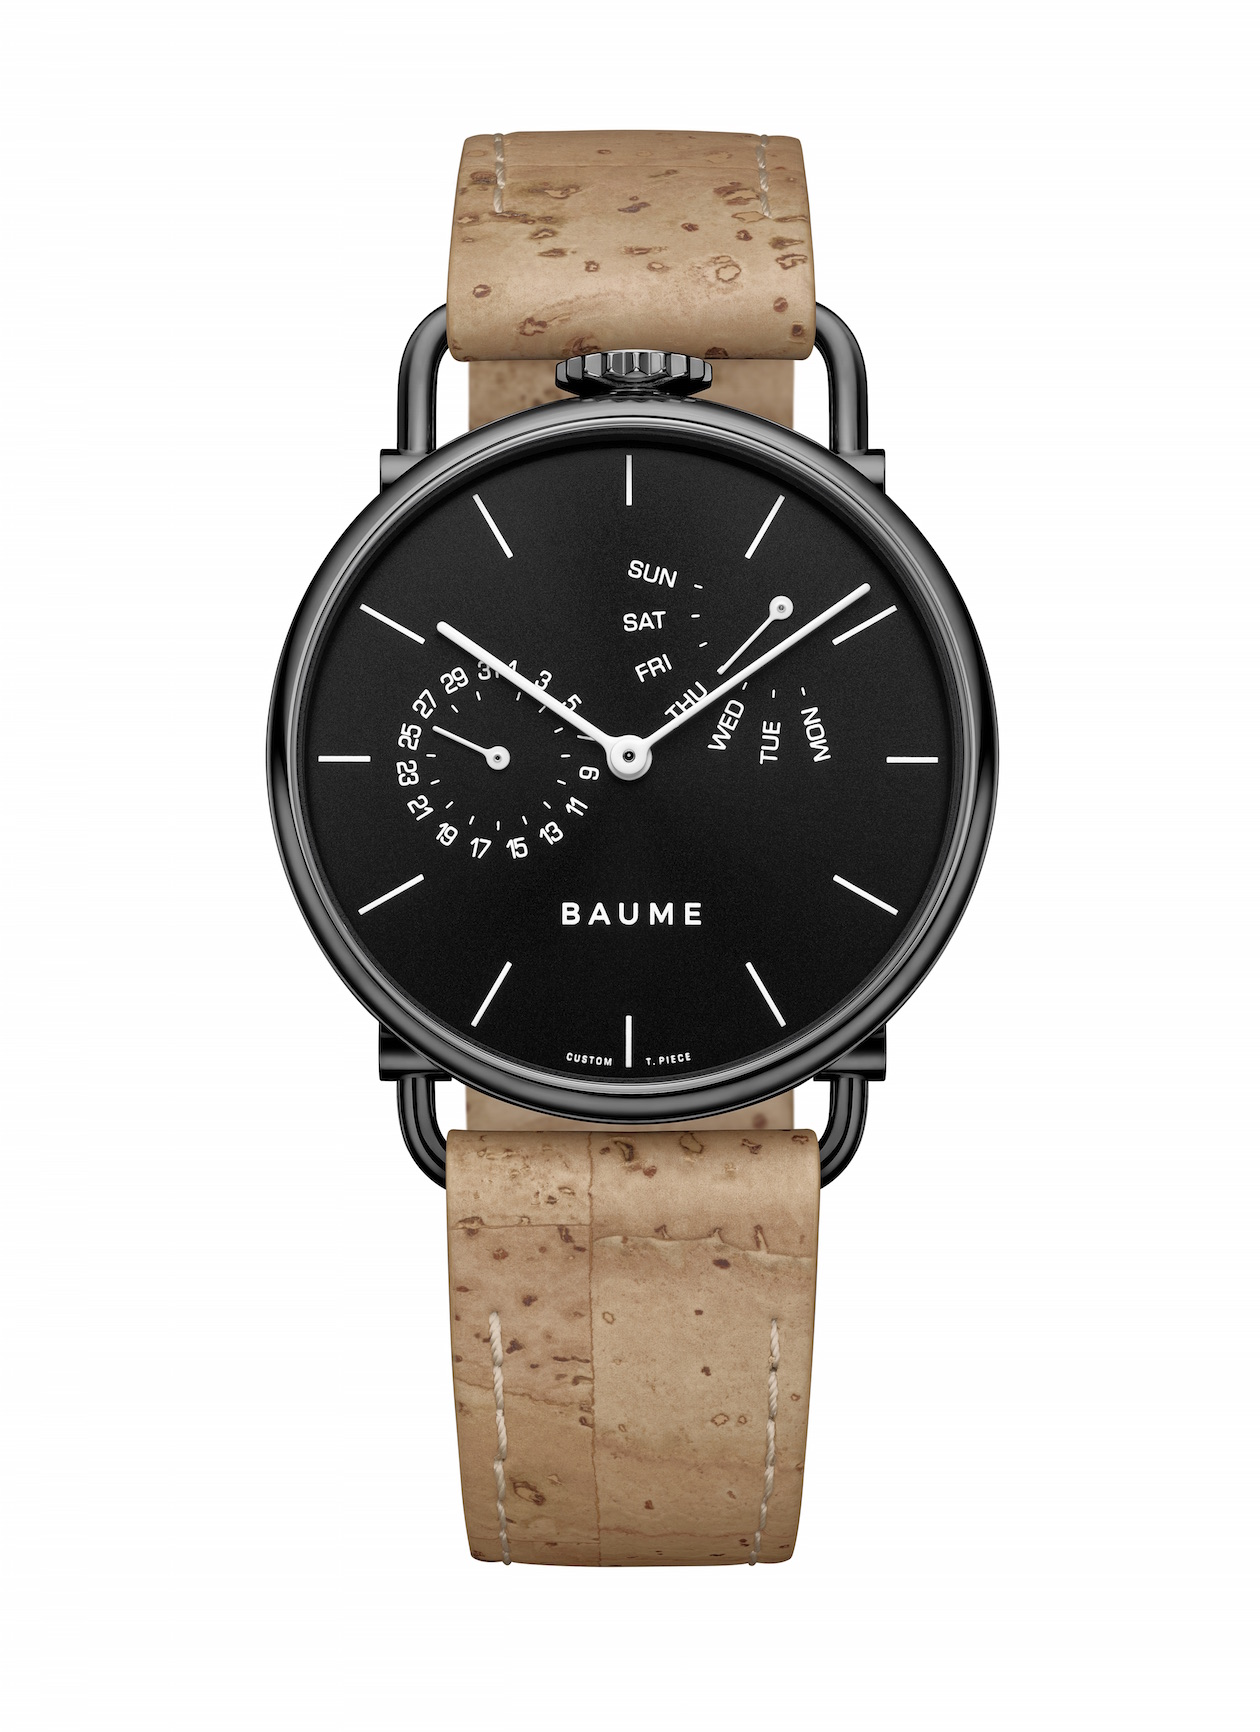 The Baume brand, new from Richemont Group, uses sustainable materials, including cork for straps.